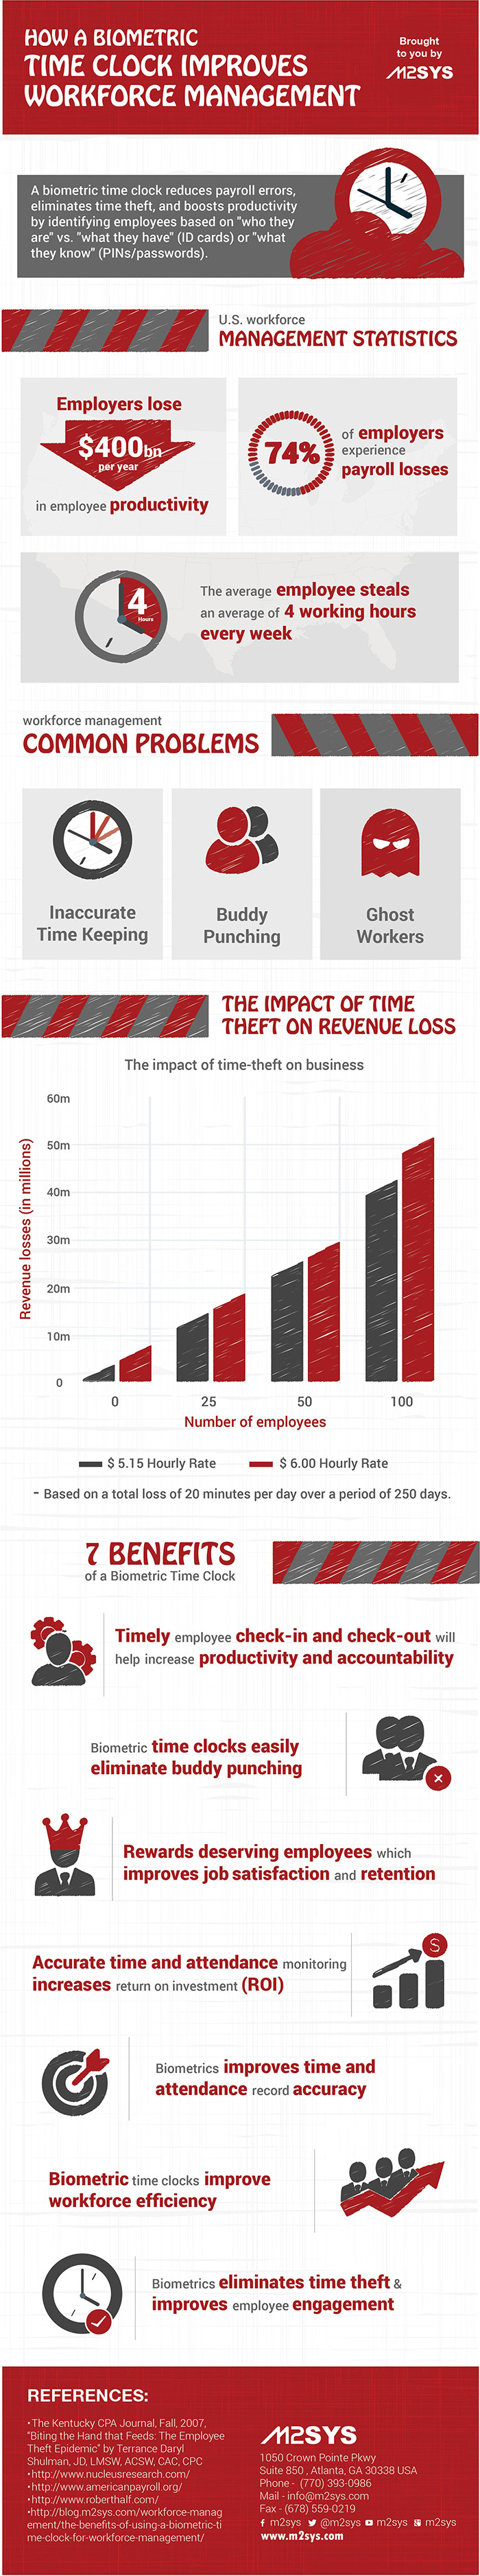 Biometric Time Clock Improves Workforce Management